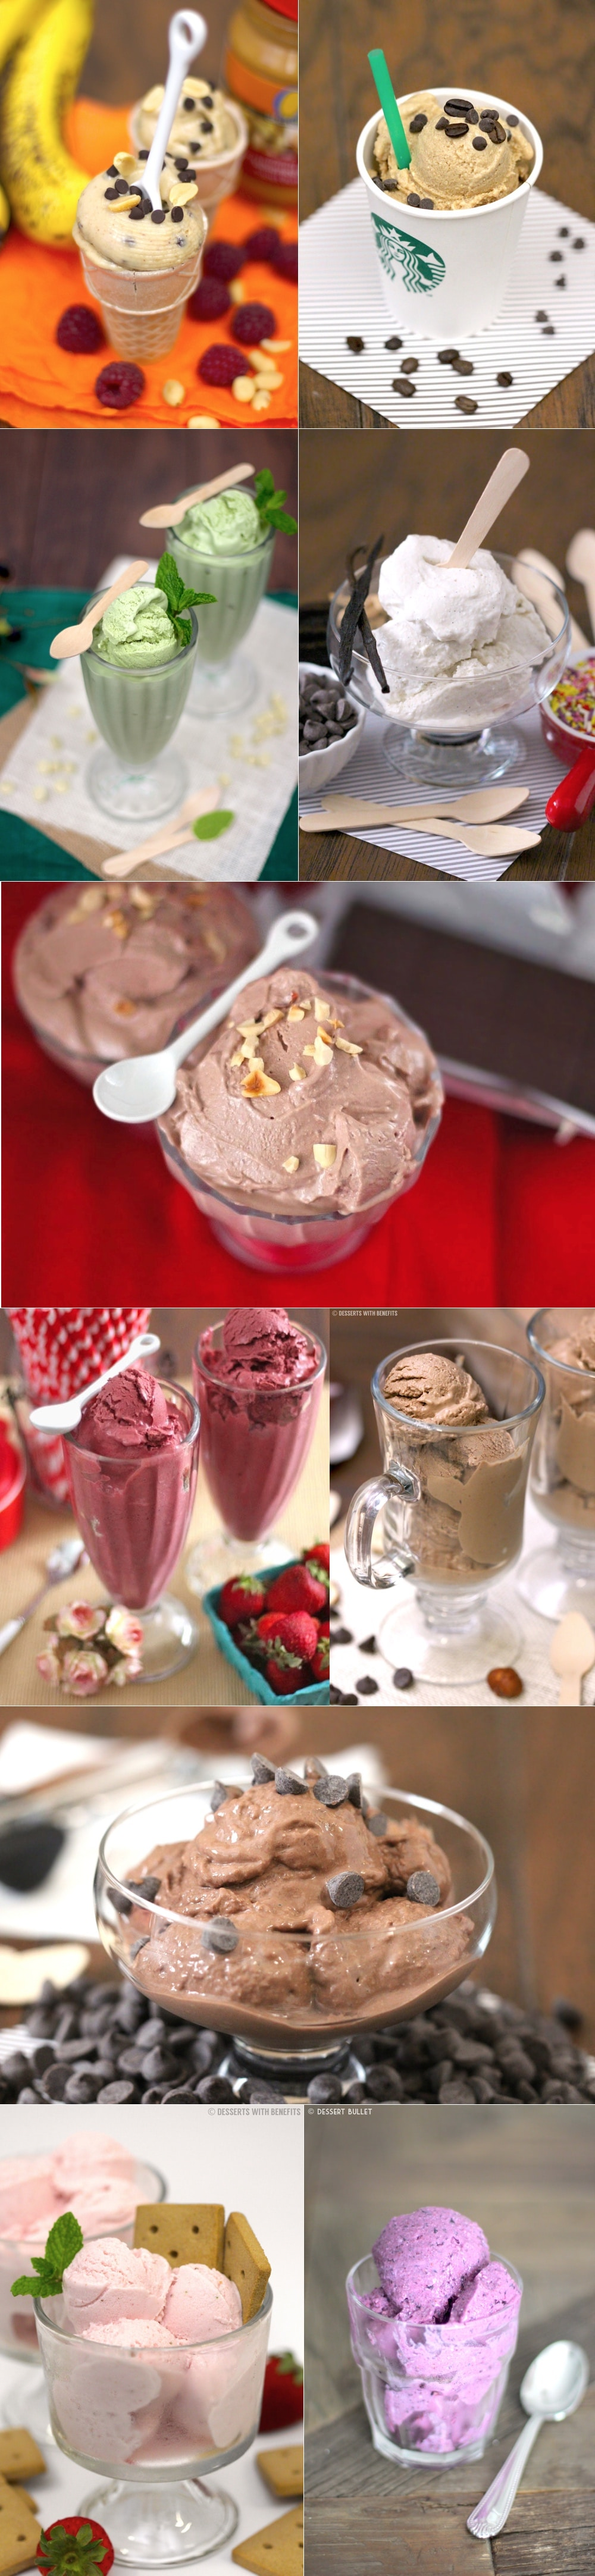 14 Popular Healthy Ice Cream Recipes (refined sugar free, low low fat, carb, high protein, gluten free) - Desserts with Benefits